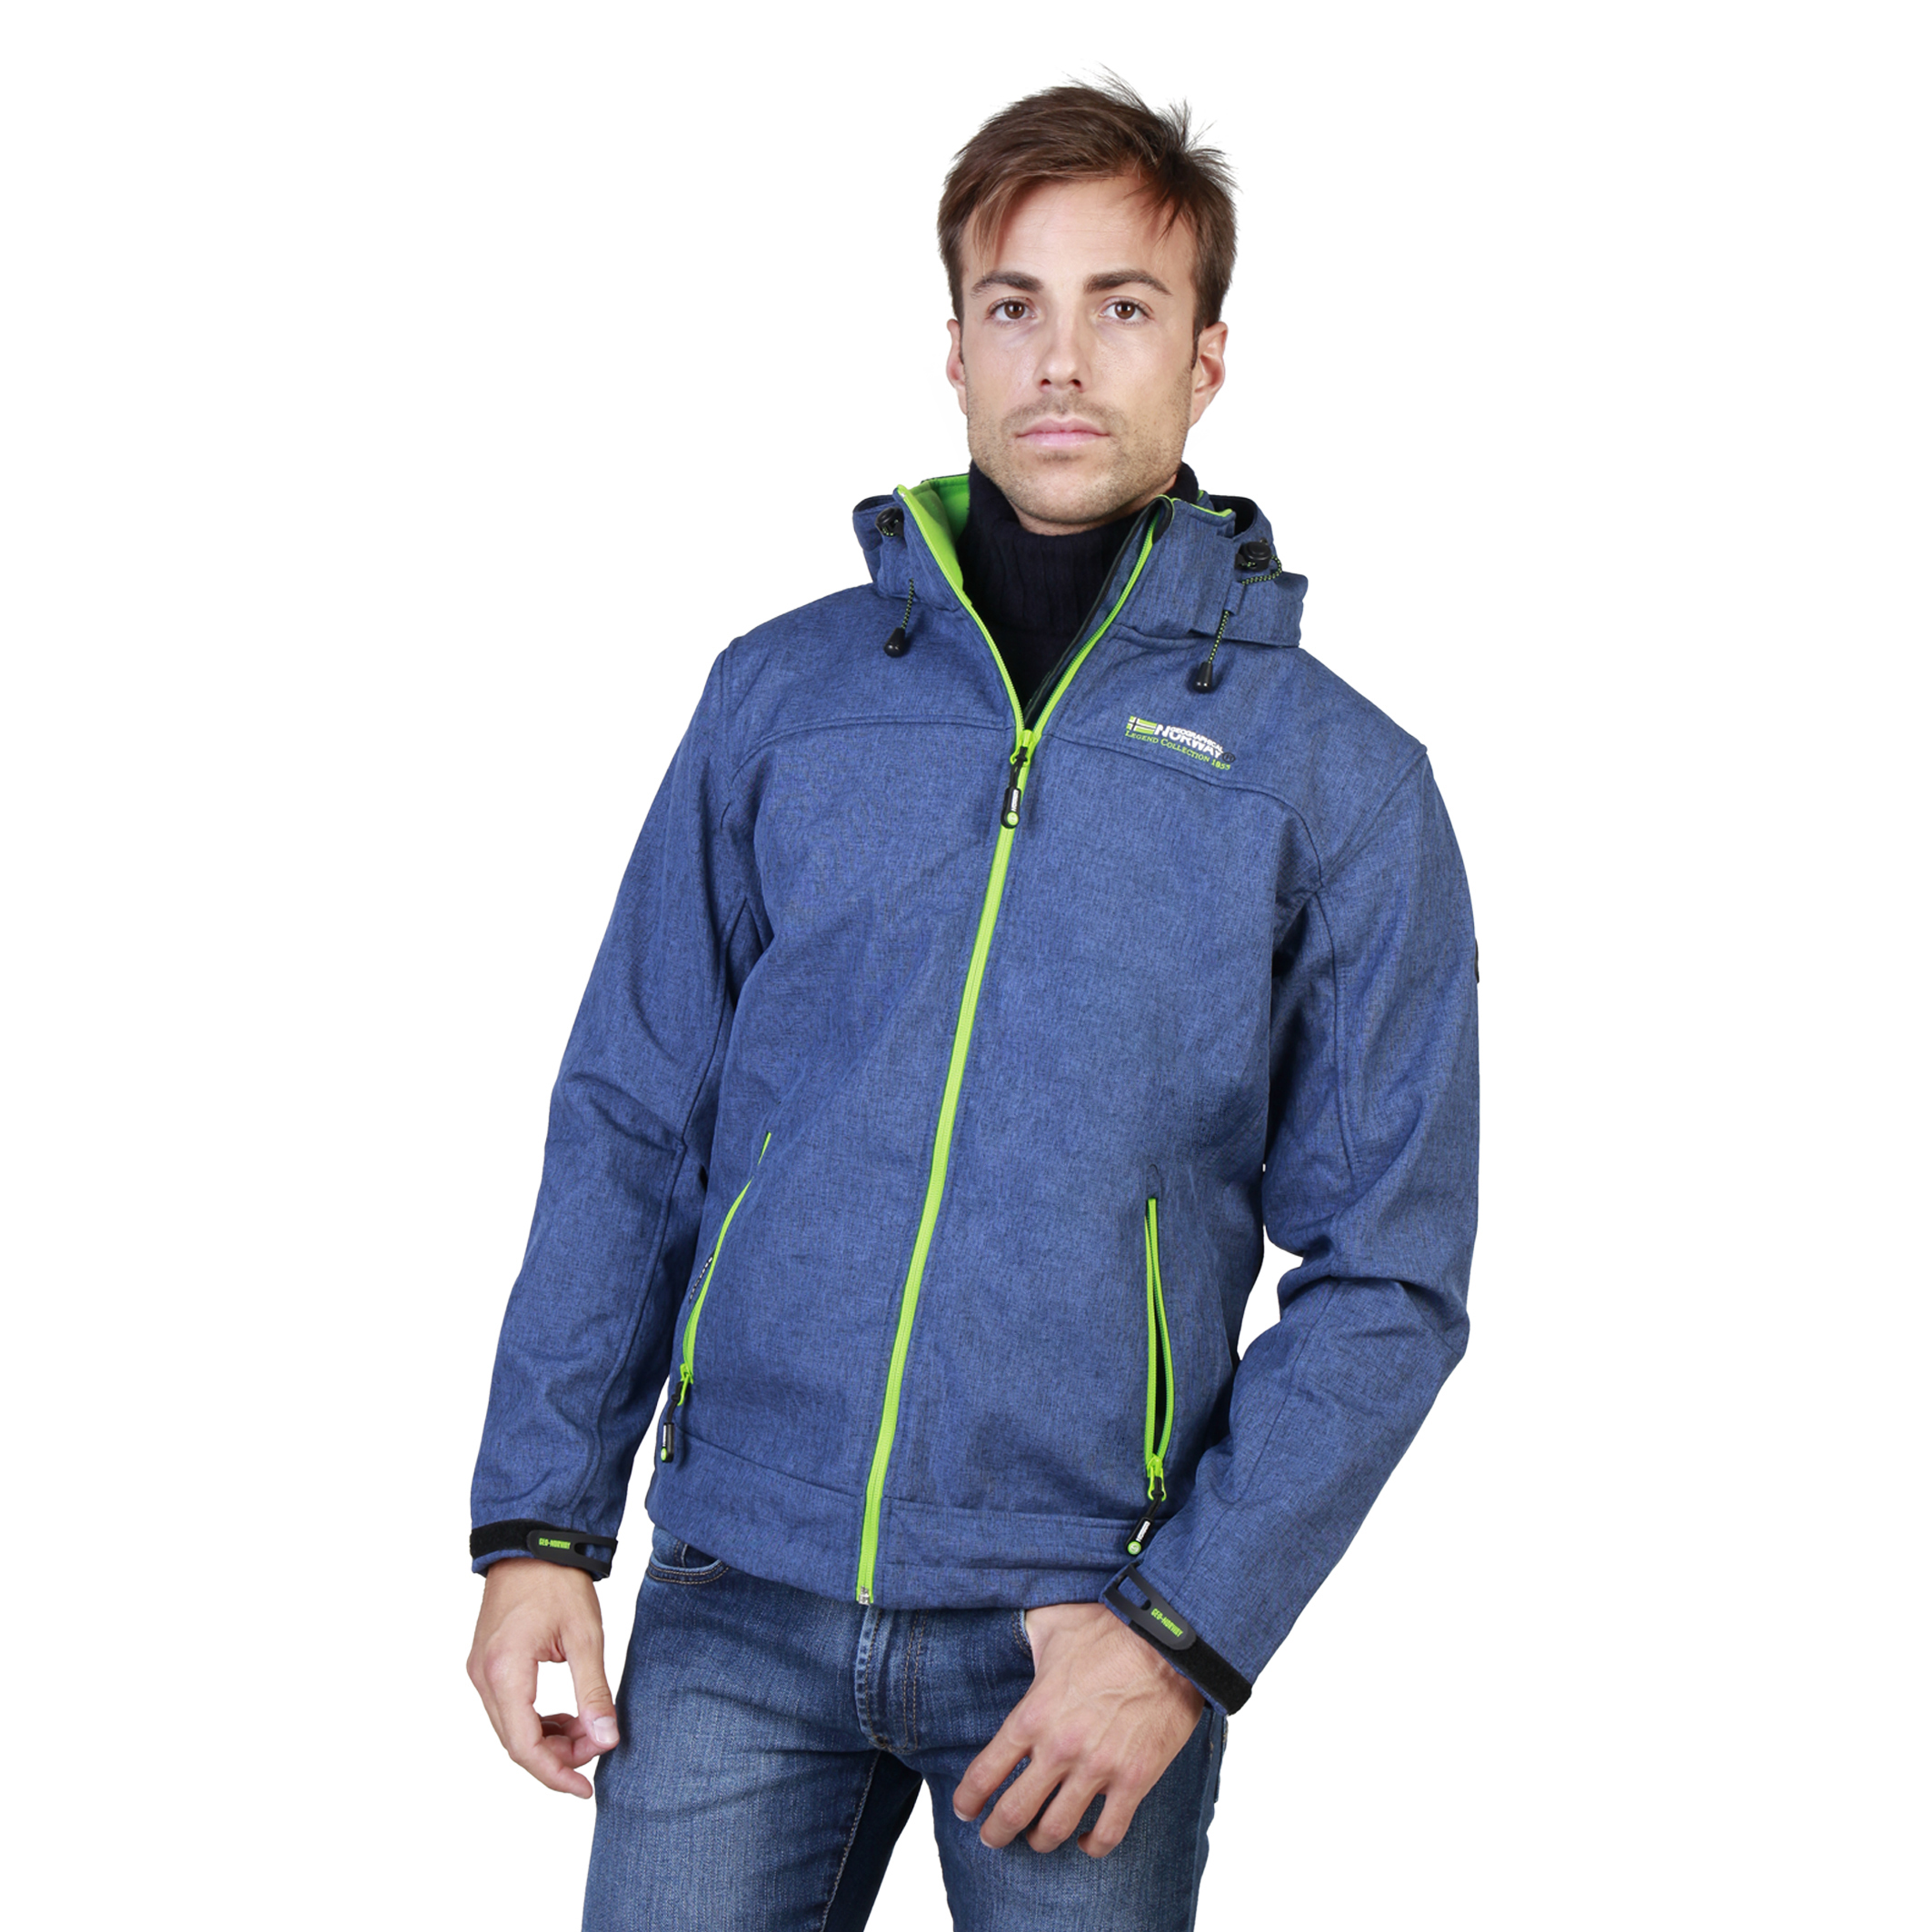 Vestes & blousons  Geographical norway Twixer_man blue